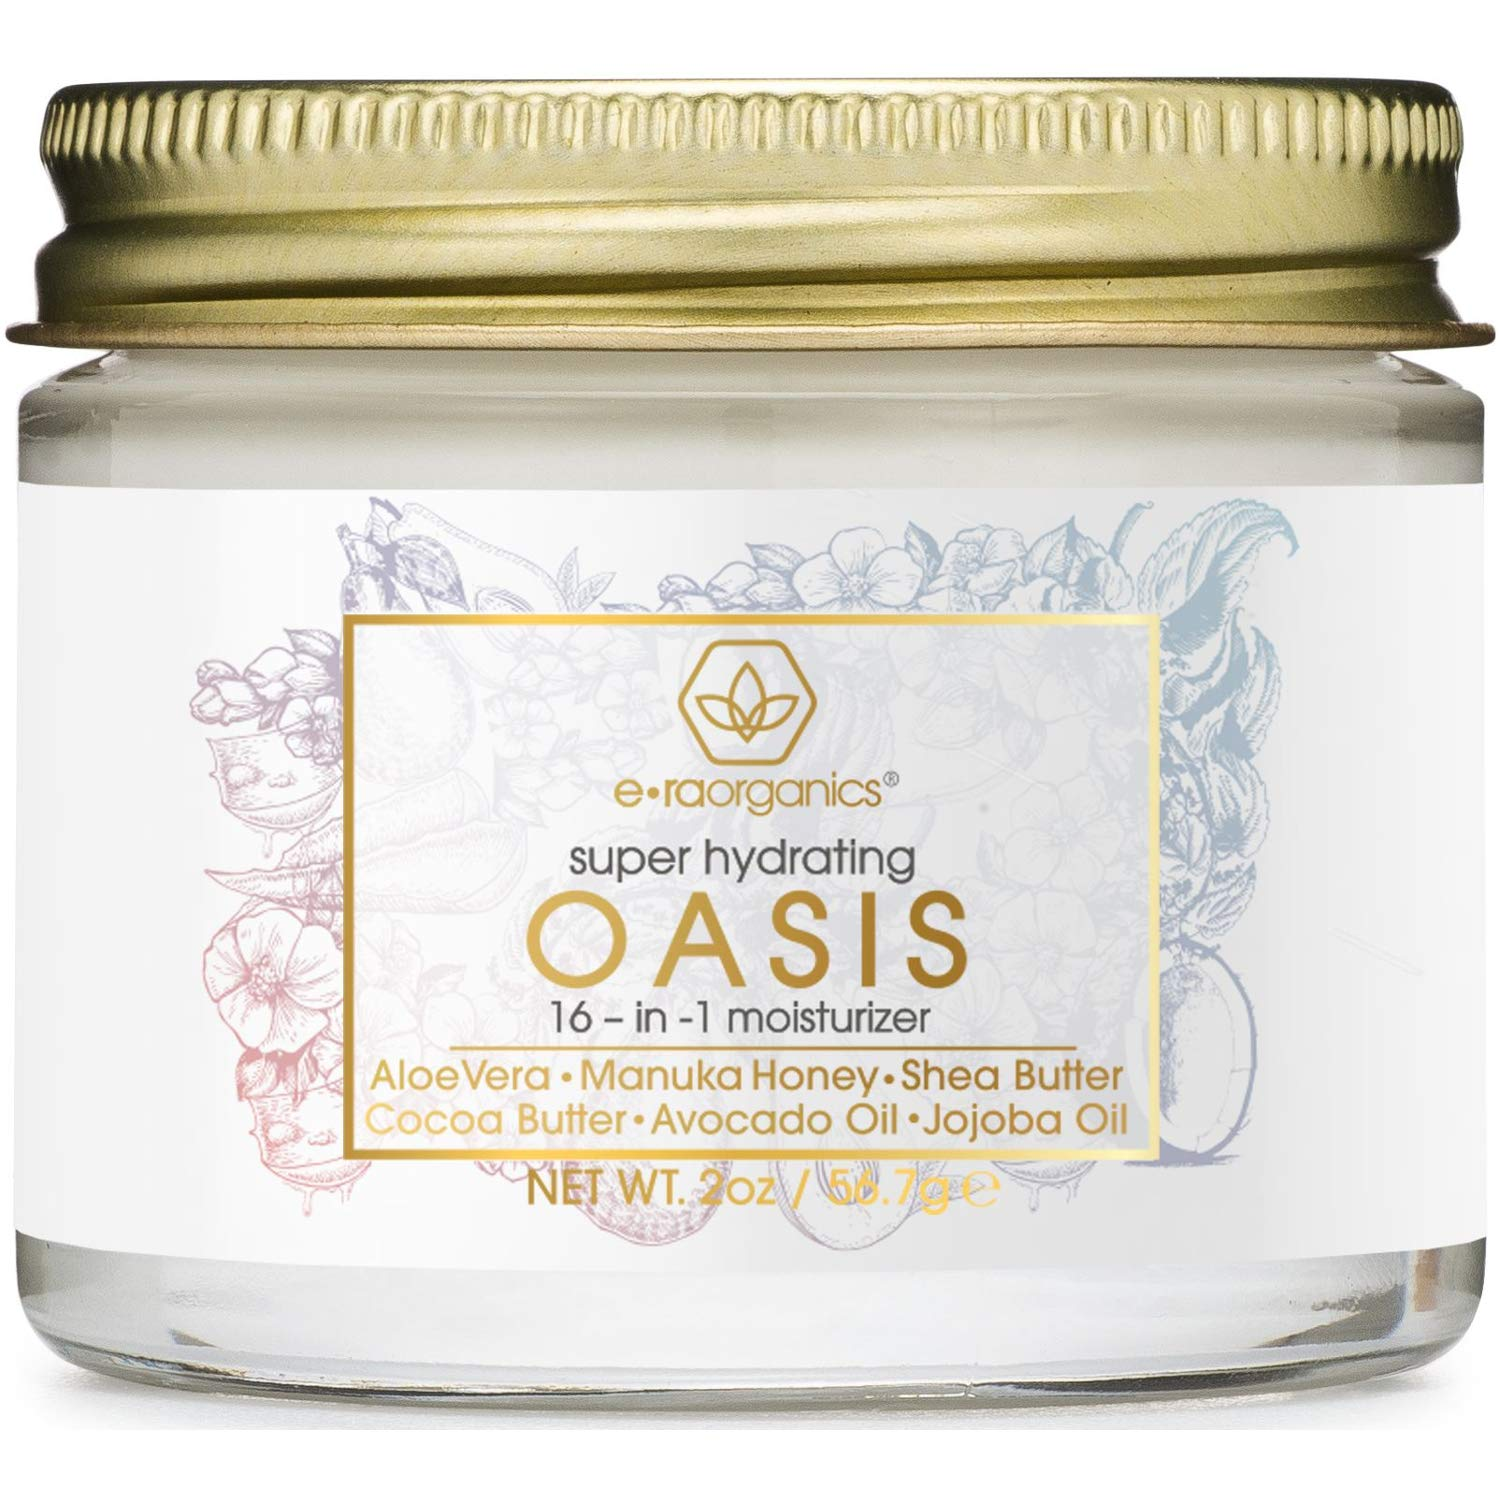 Era Organics Face Moisturizer for Dry Skin